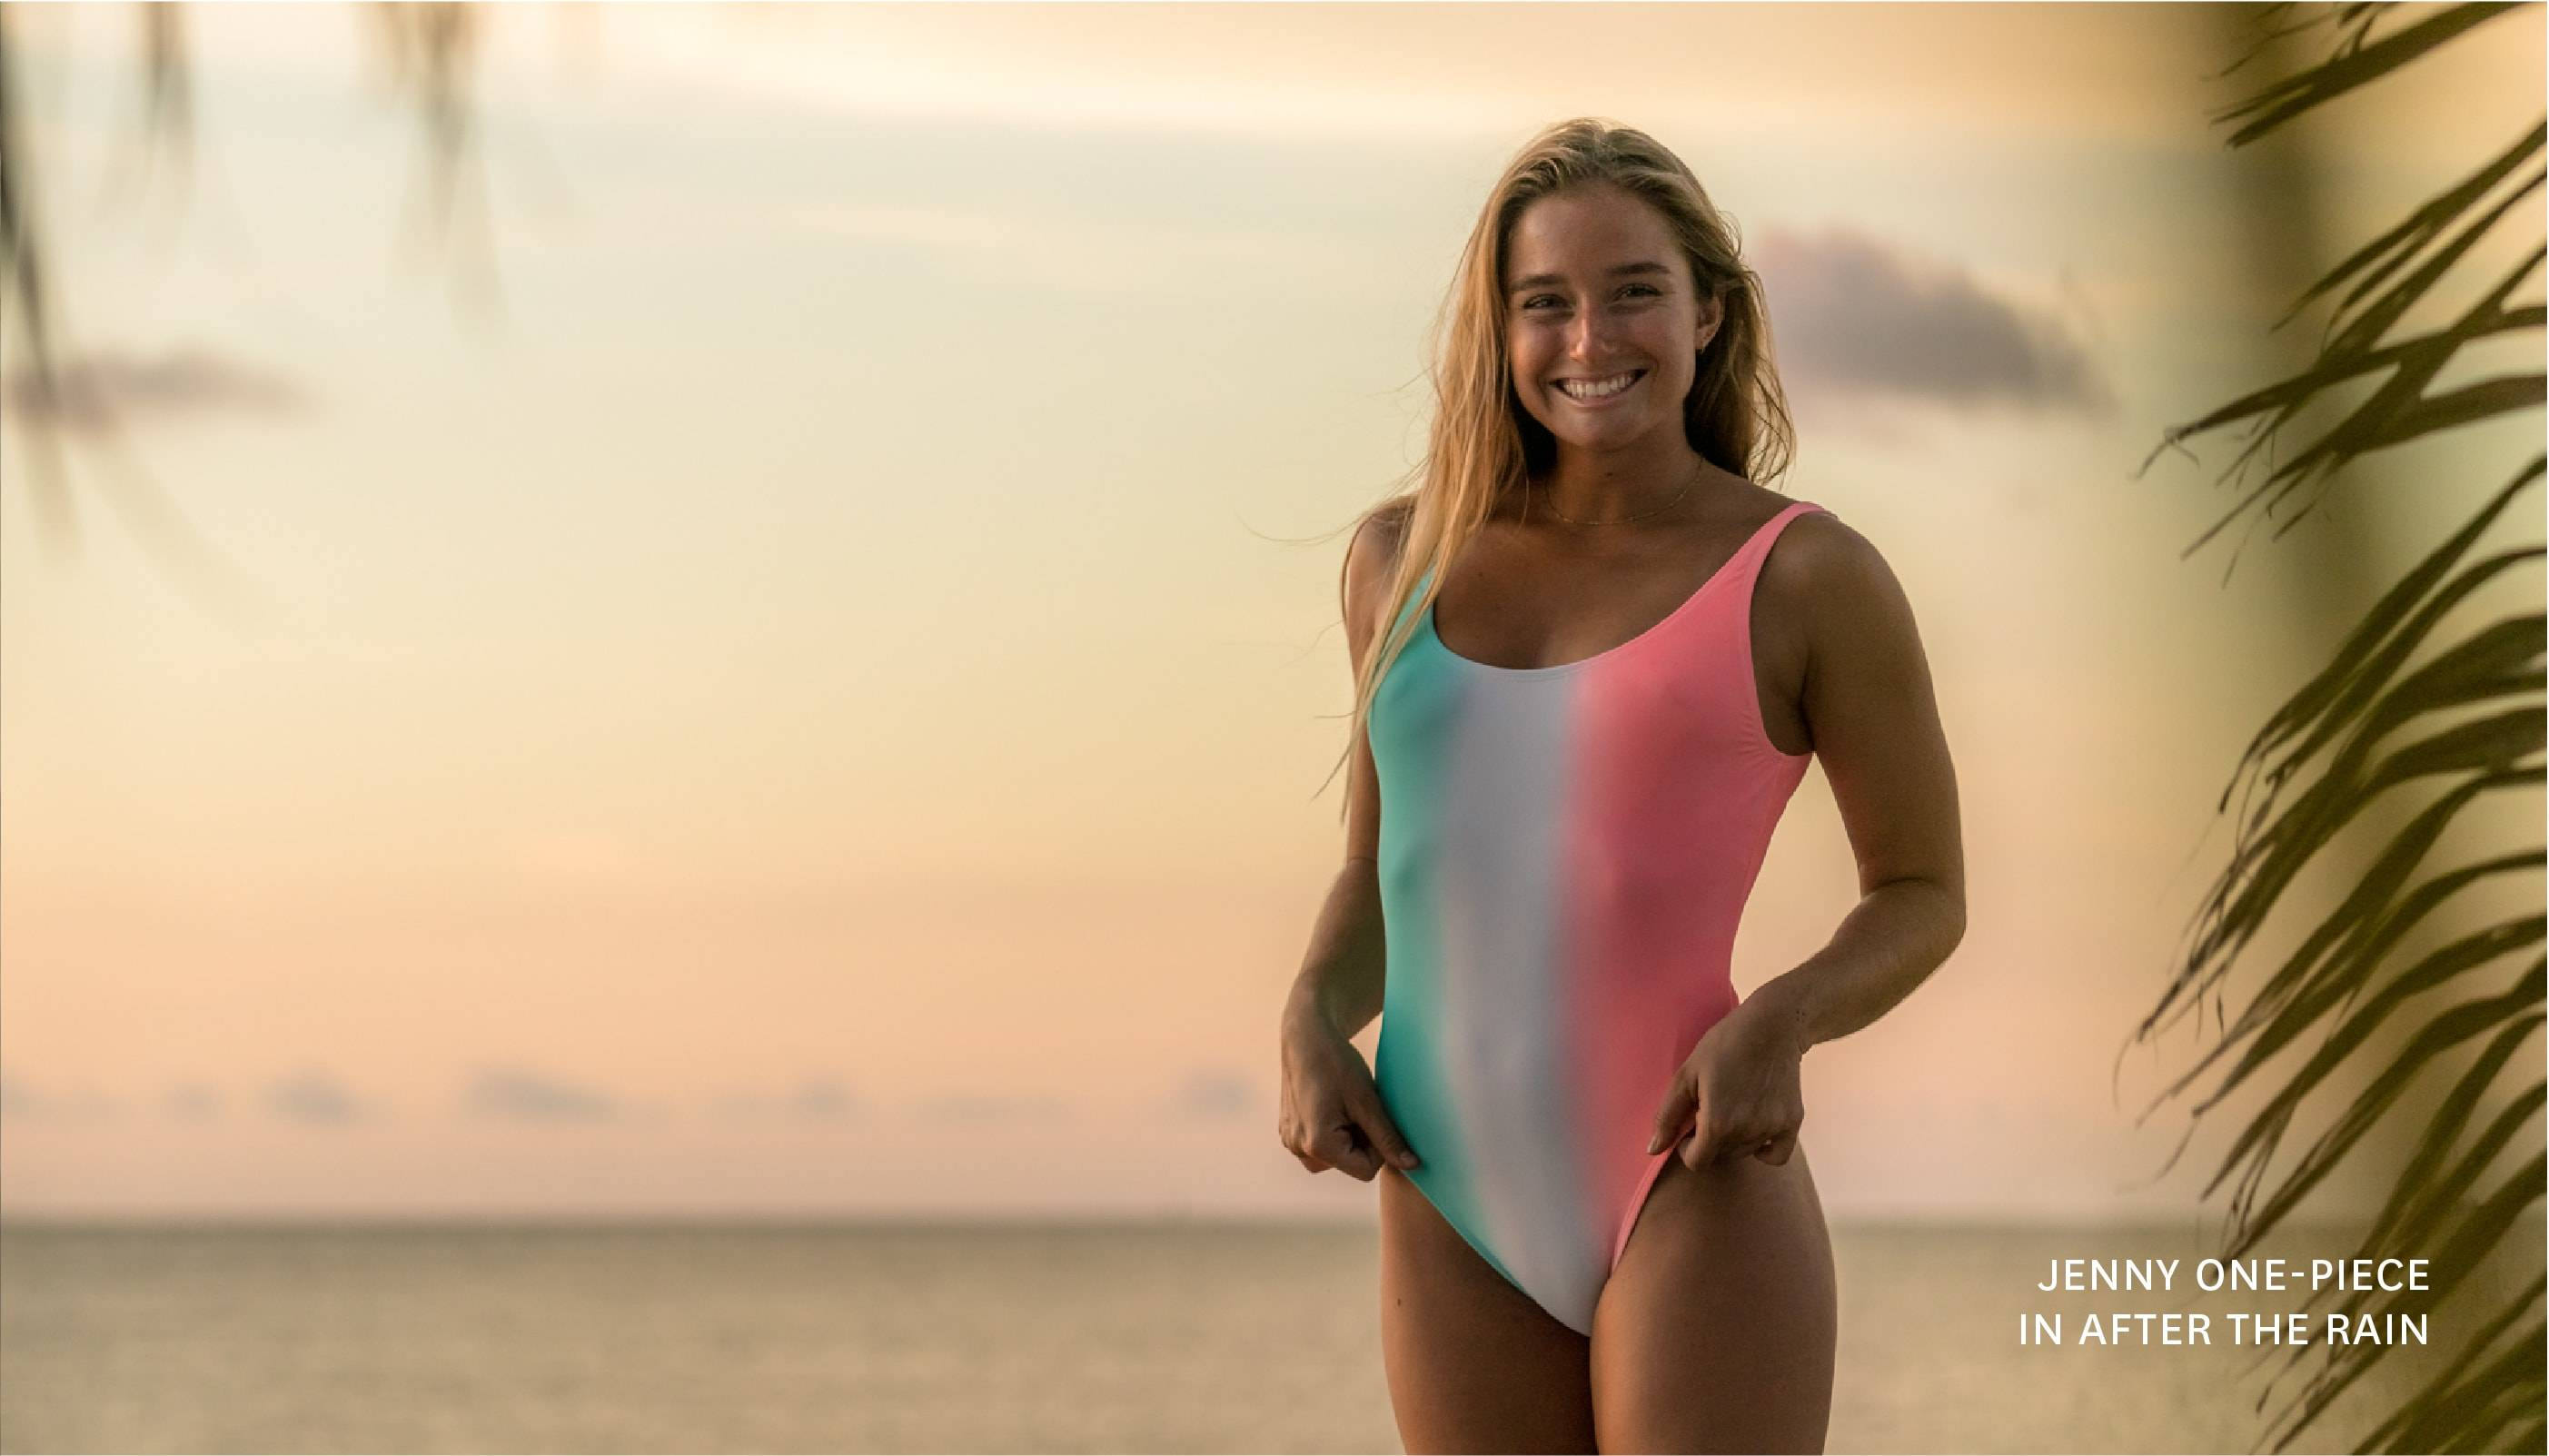 Get the JENNY ONE-PIECE in AFTER THE RAIN!